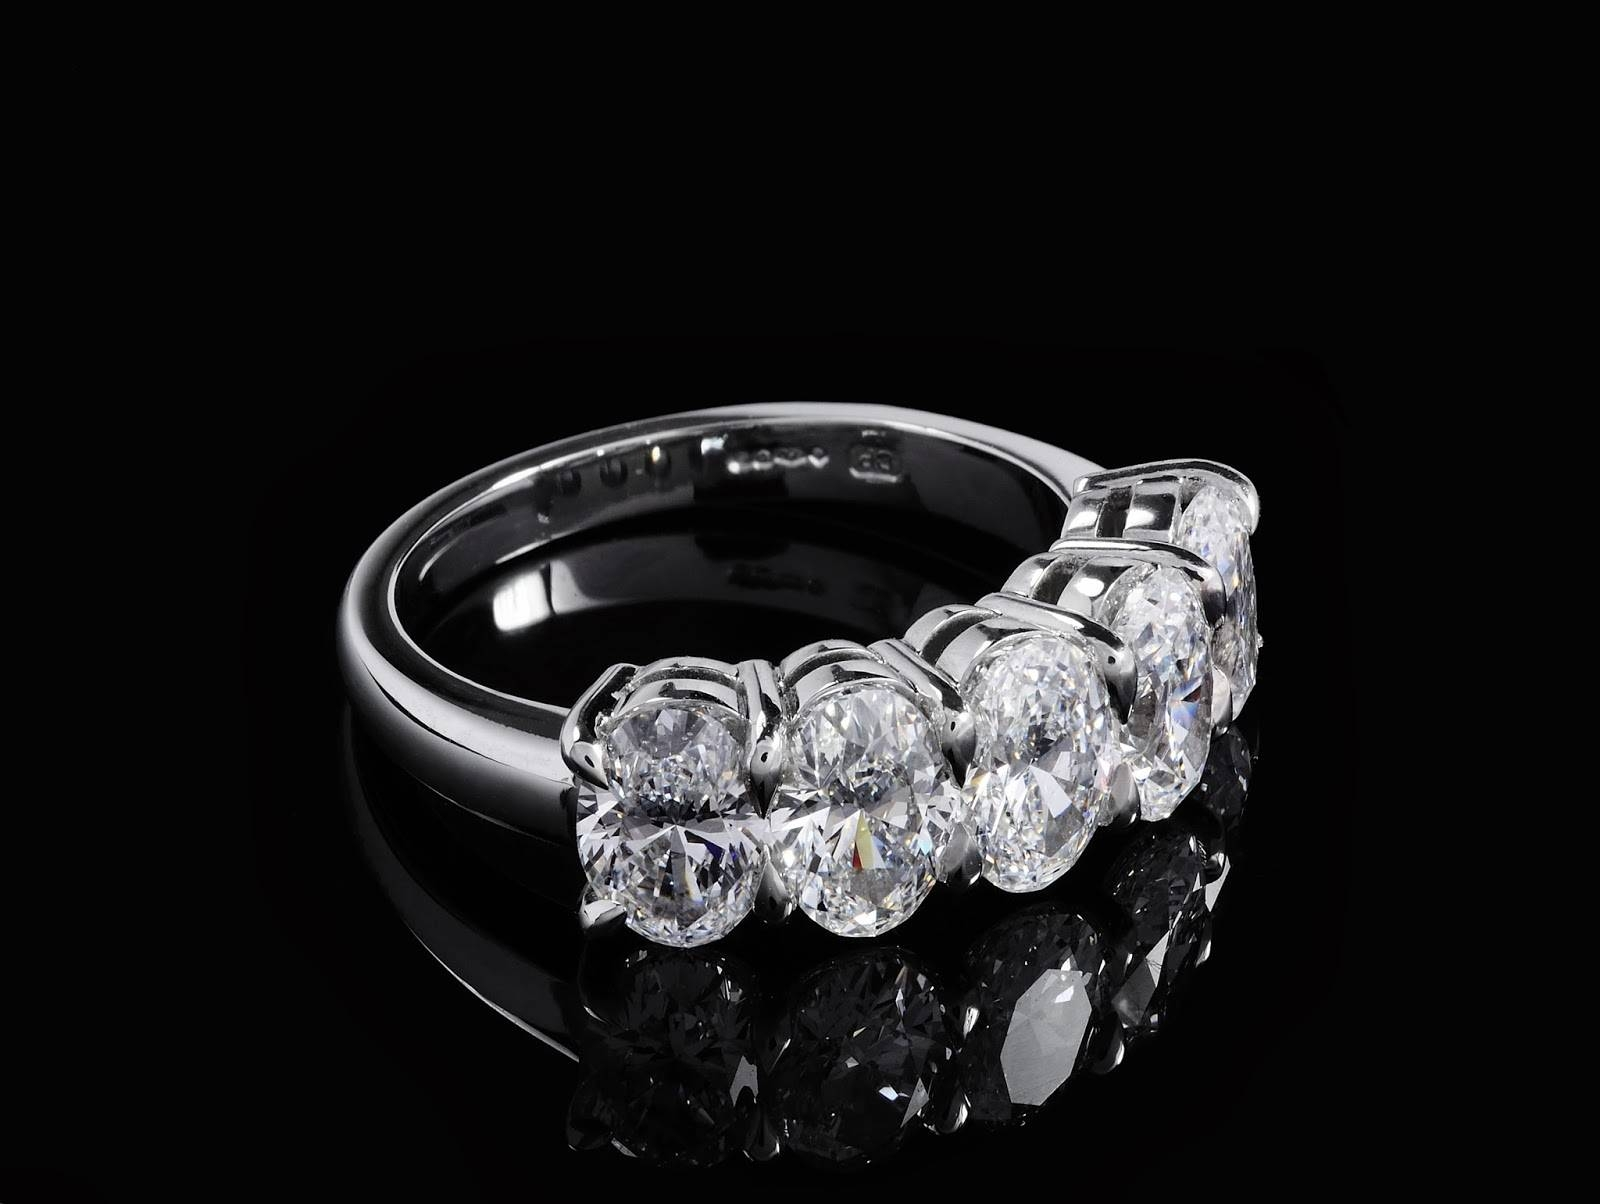 Bespoke Jewellery Blog From Daniel Prince Of London: 5 Stone Oval In Most Current Five Stone Anniversary Rings (Gallery 21 of 25)